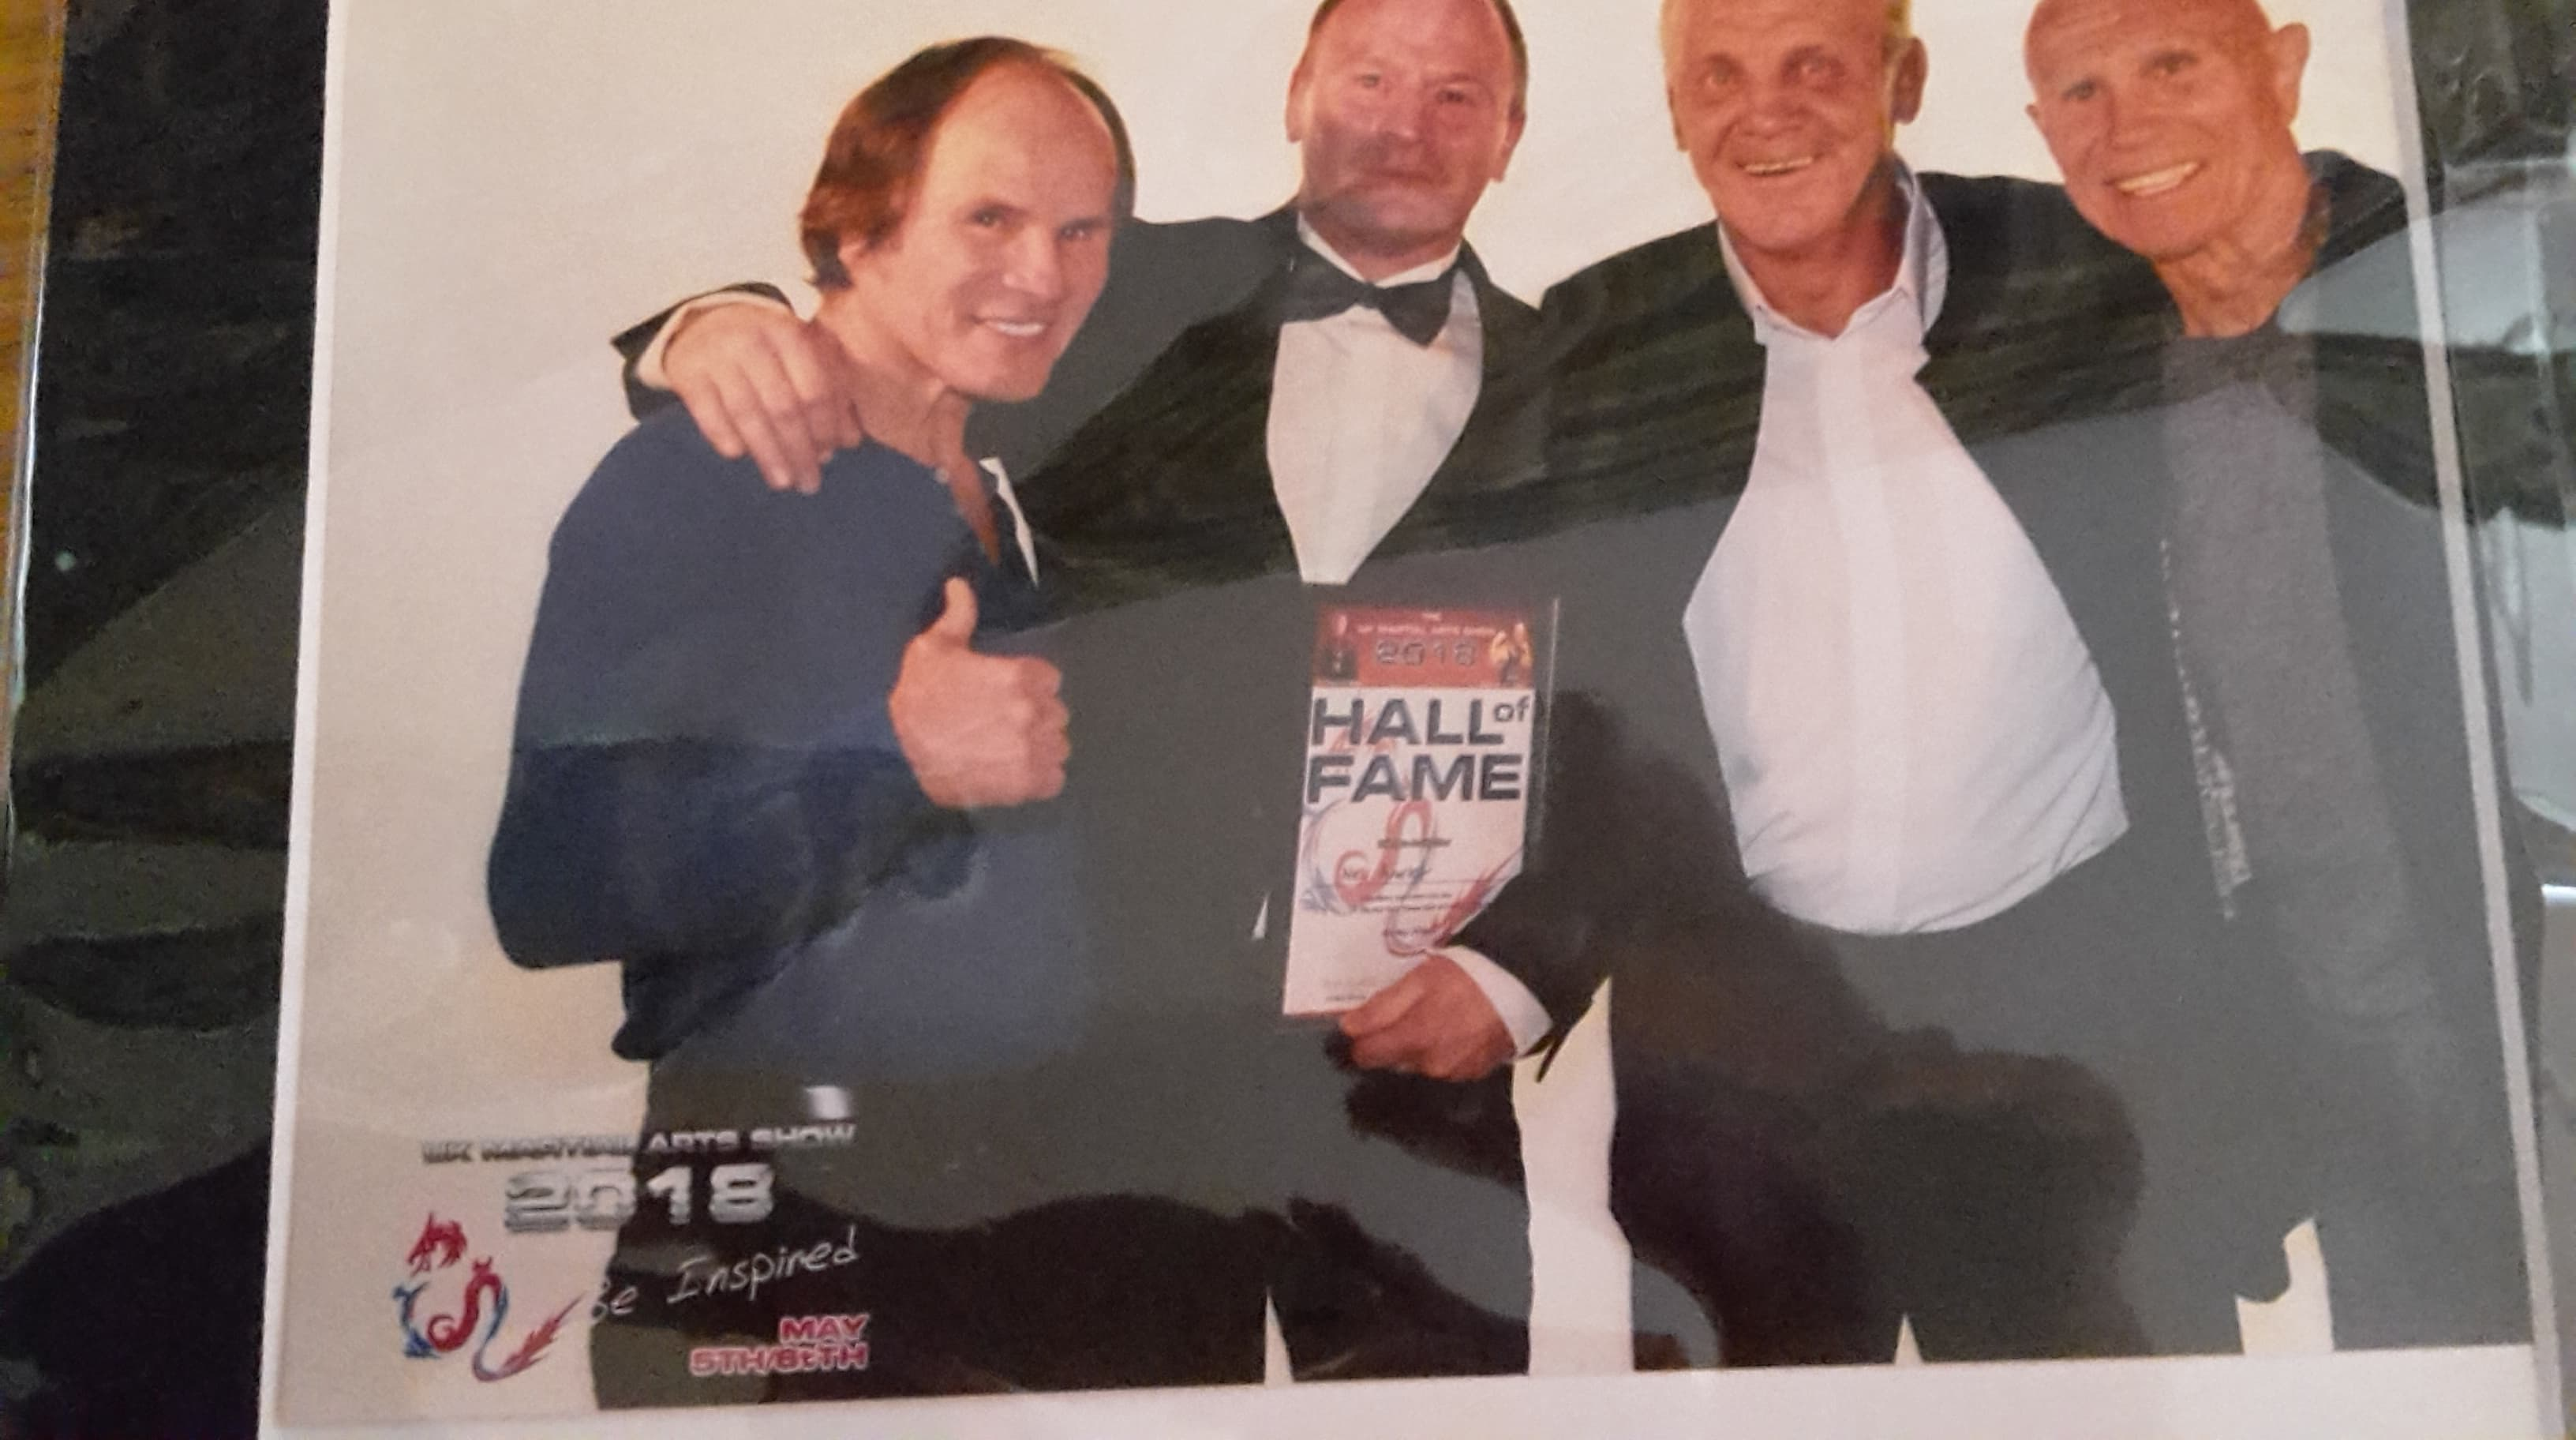 Neil Hall of Fame